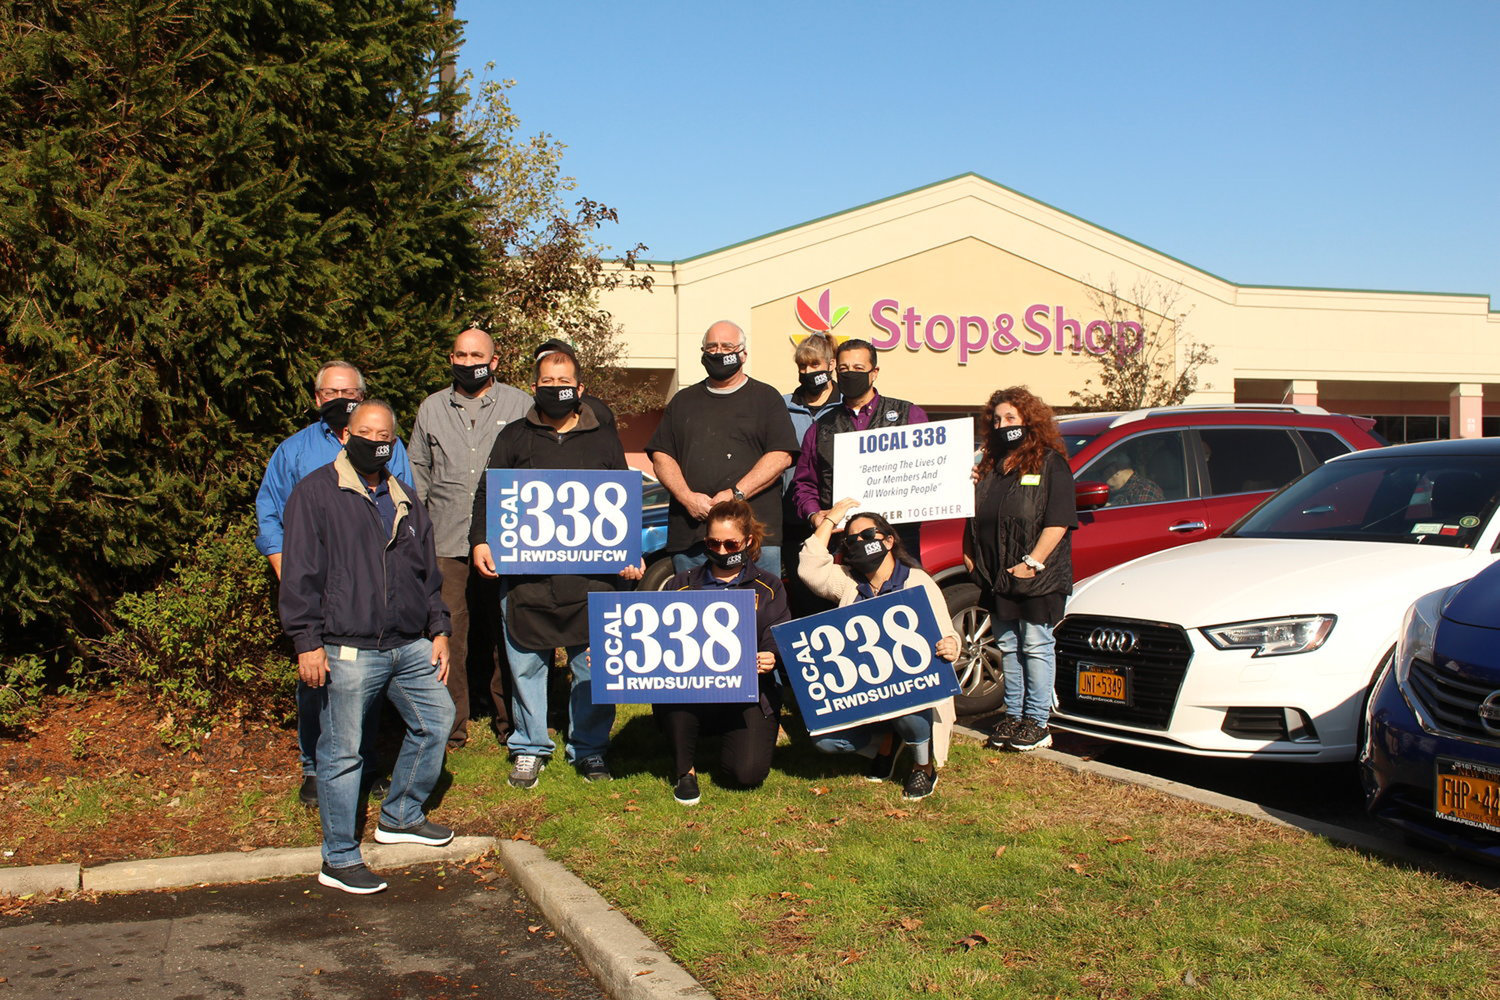 Stop & Shop employees and Local 338 members gathered at a news conference on Nov. 6 at which officials announced that essential workers could receive free virus tests.